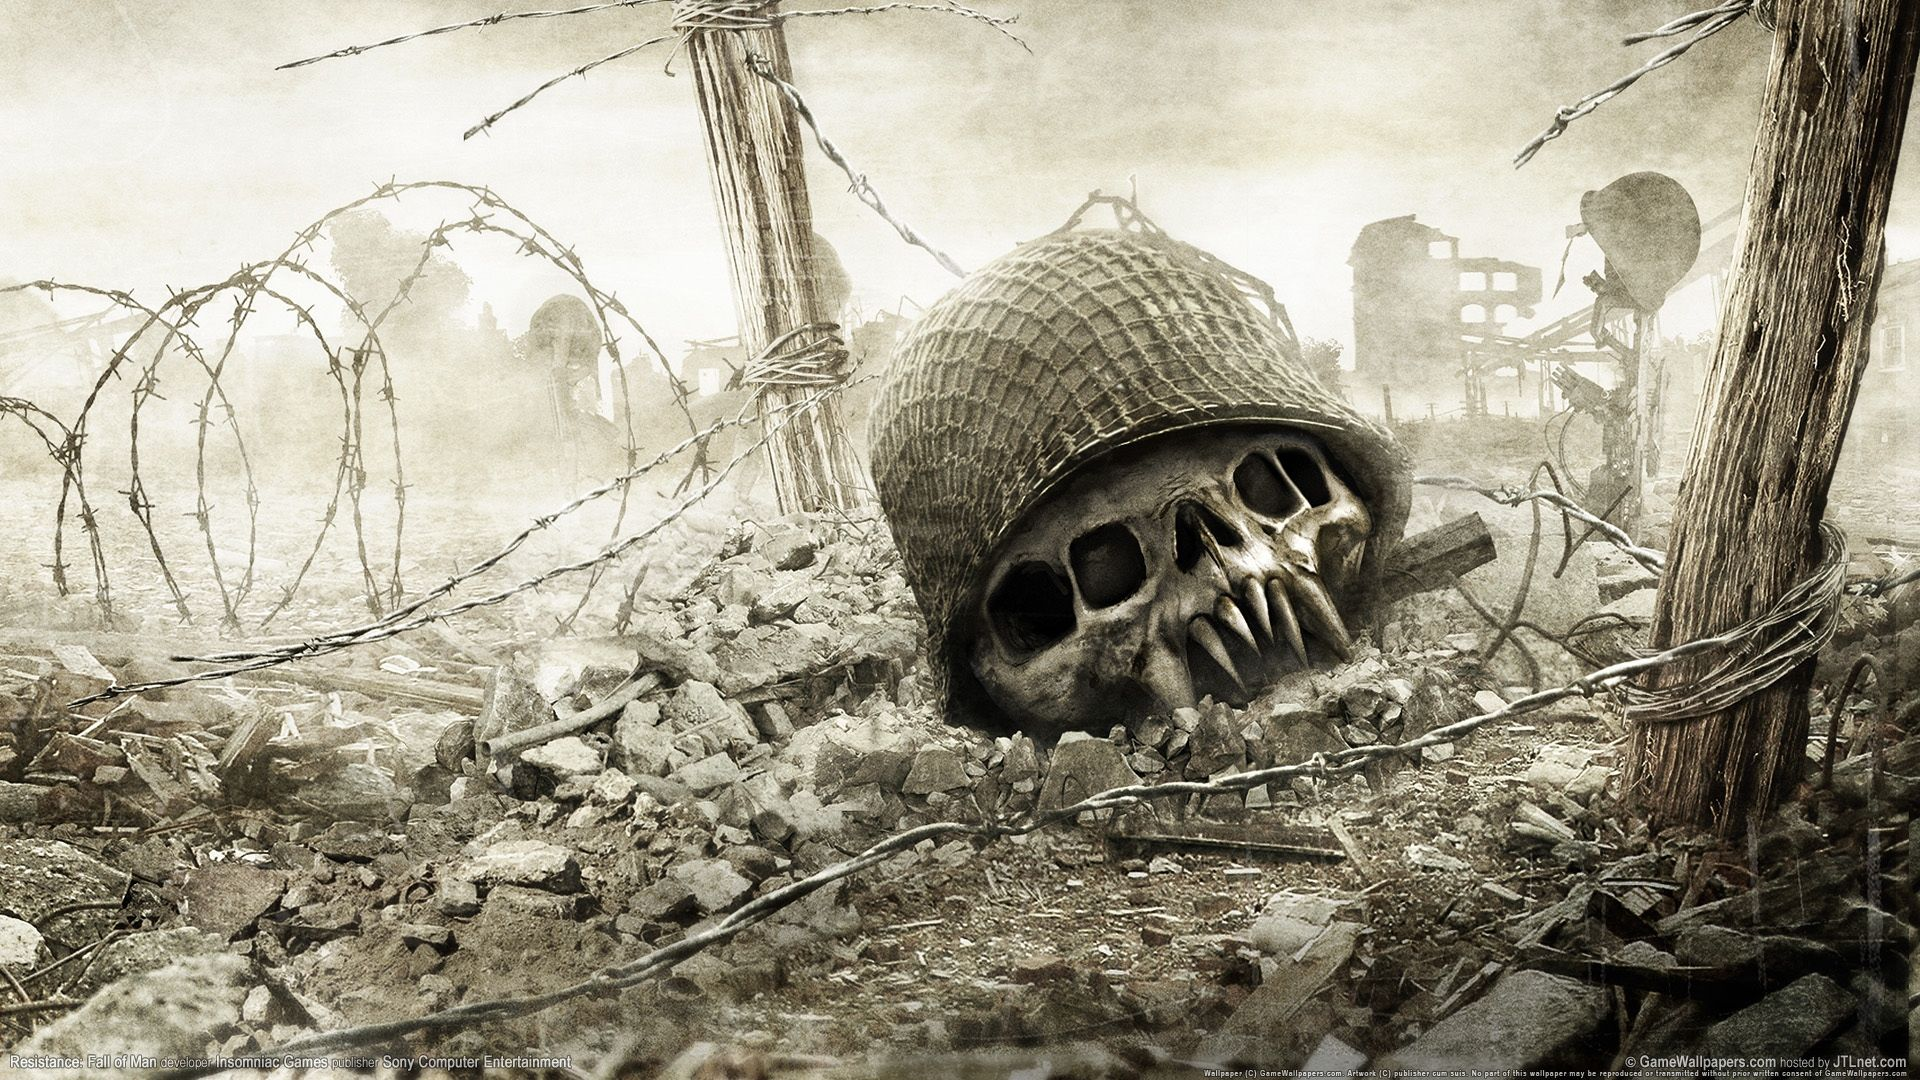 Awesome Resistance Skull Helmet Mutation Download Image Pin Hd Wallpapers